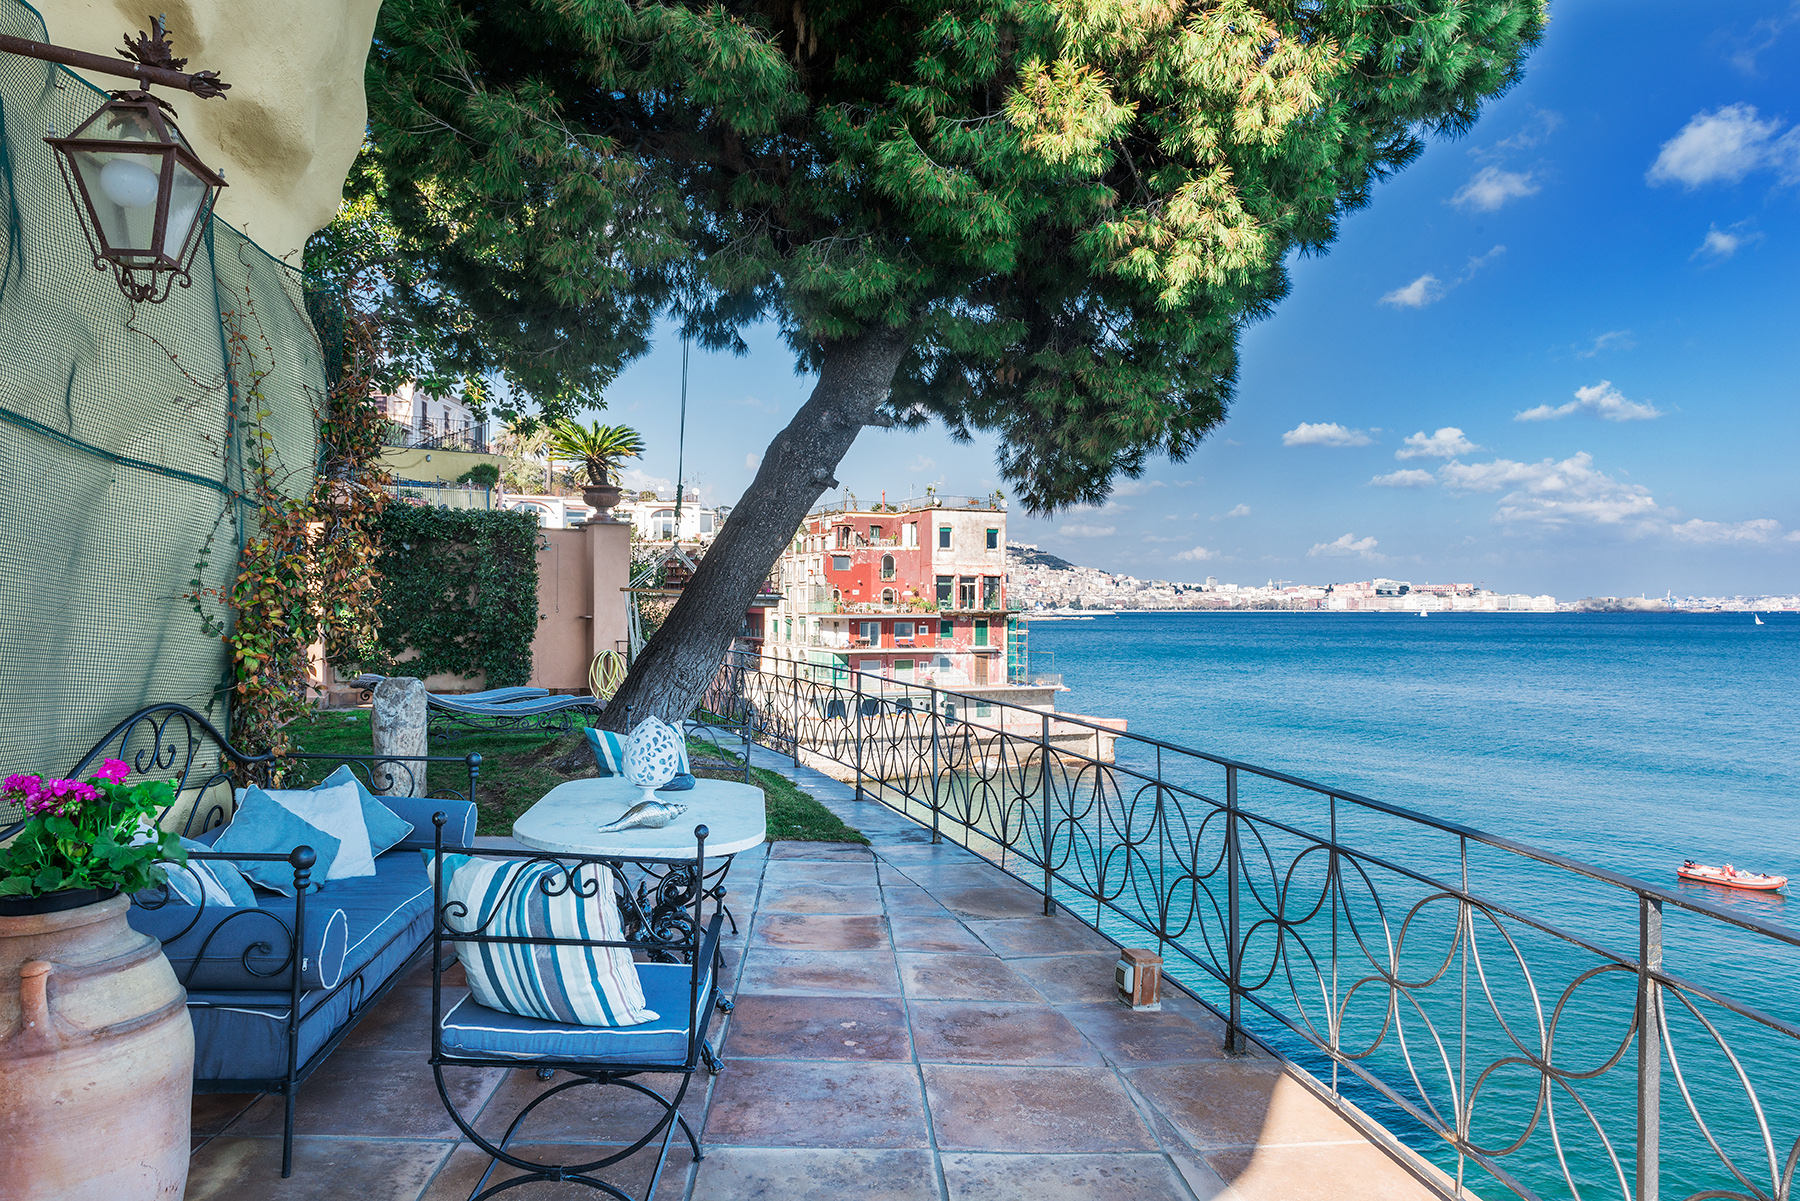 Additional photo for property listing at Historic home pied dans l'eau in Posillipo Via Posillipo Napoli, Naples 80123 Italia